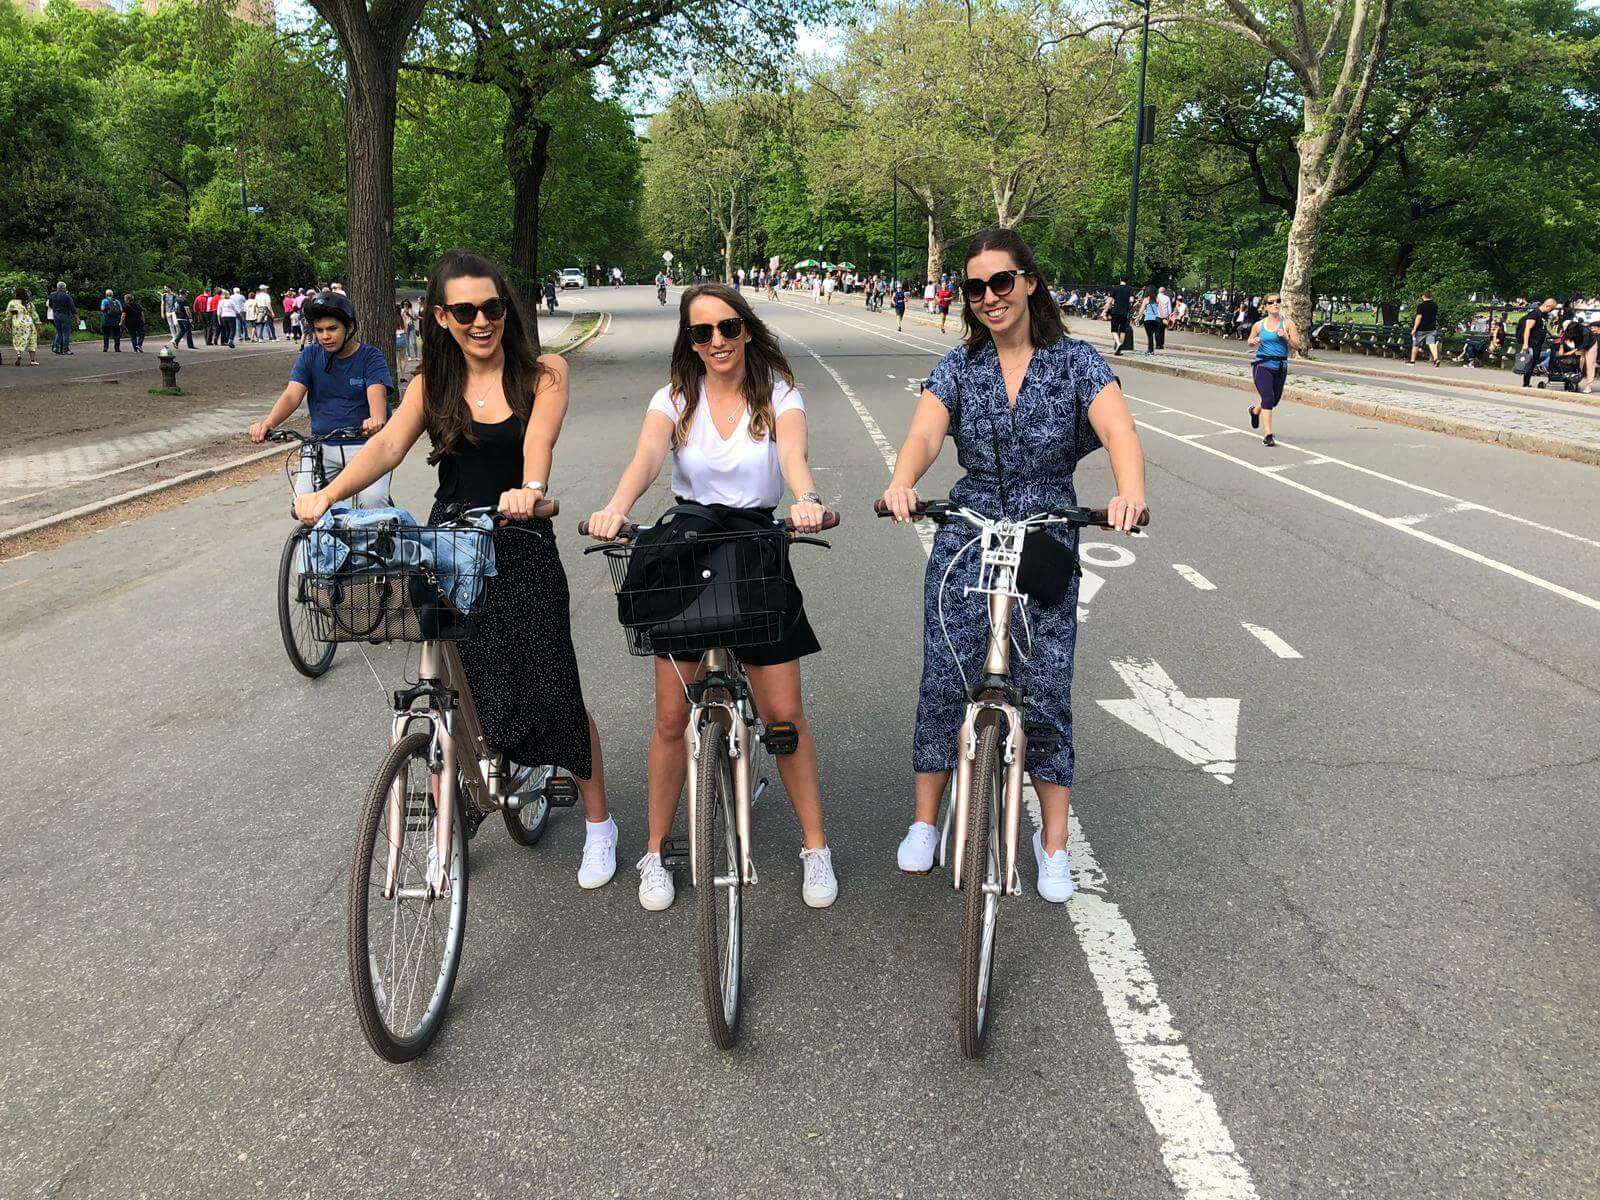 New Yorkriding bikes in central park